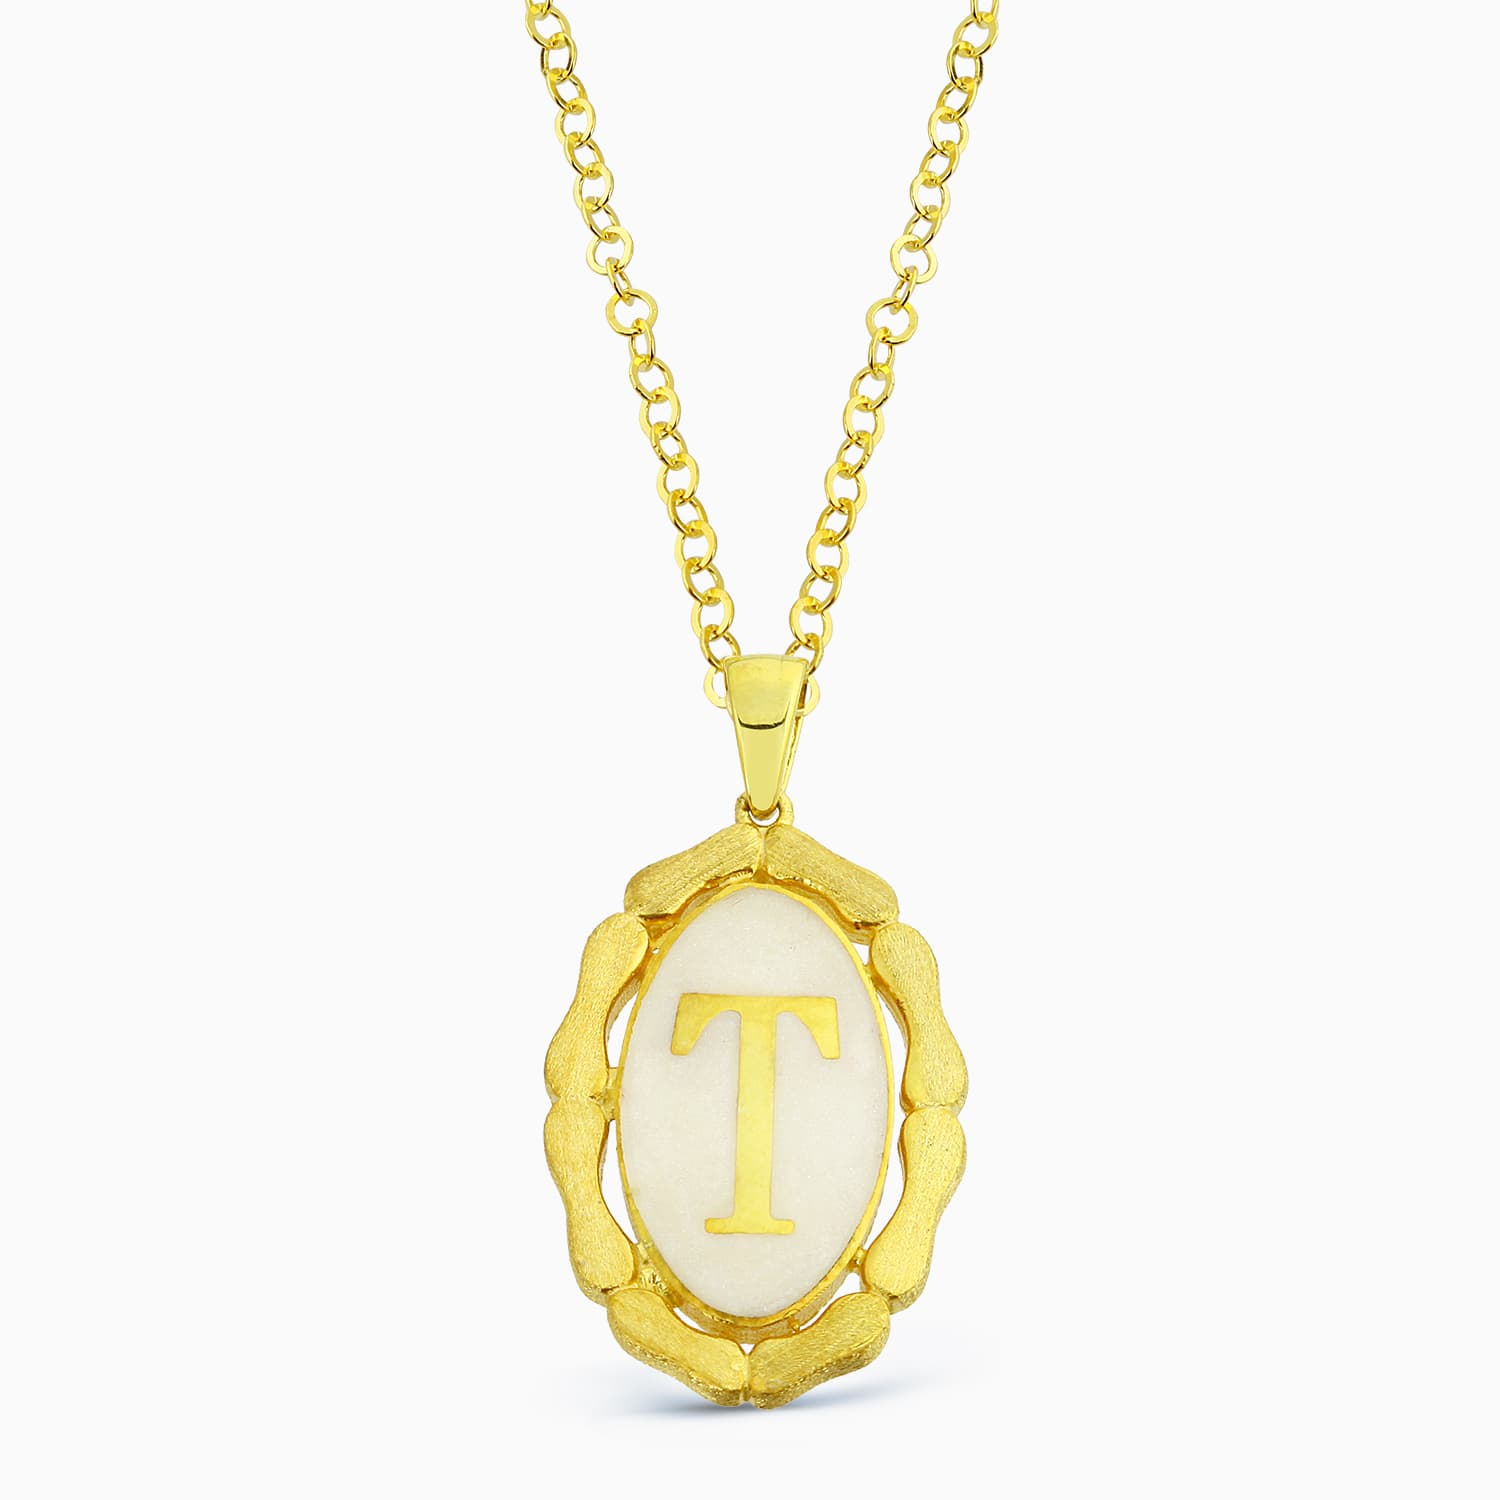 LETTER T MINNED NECKLACE